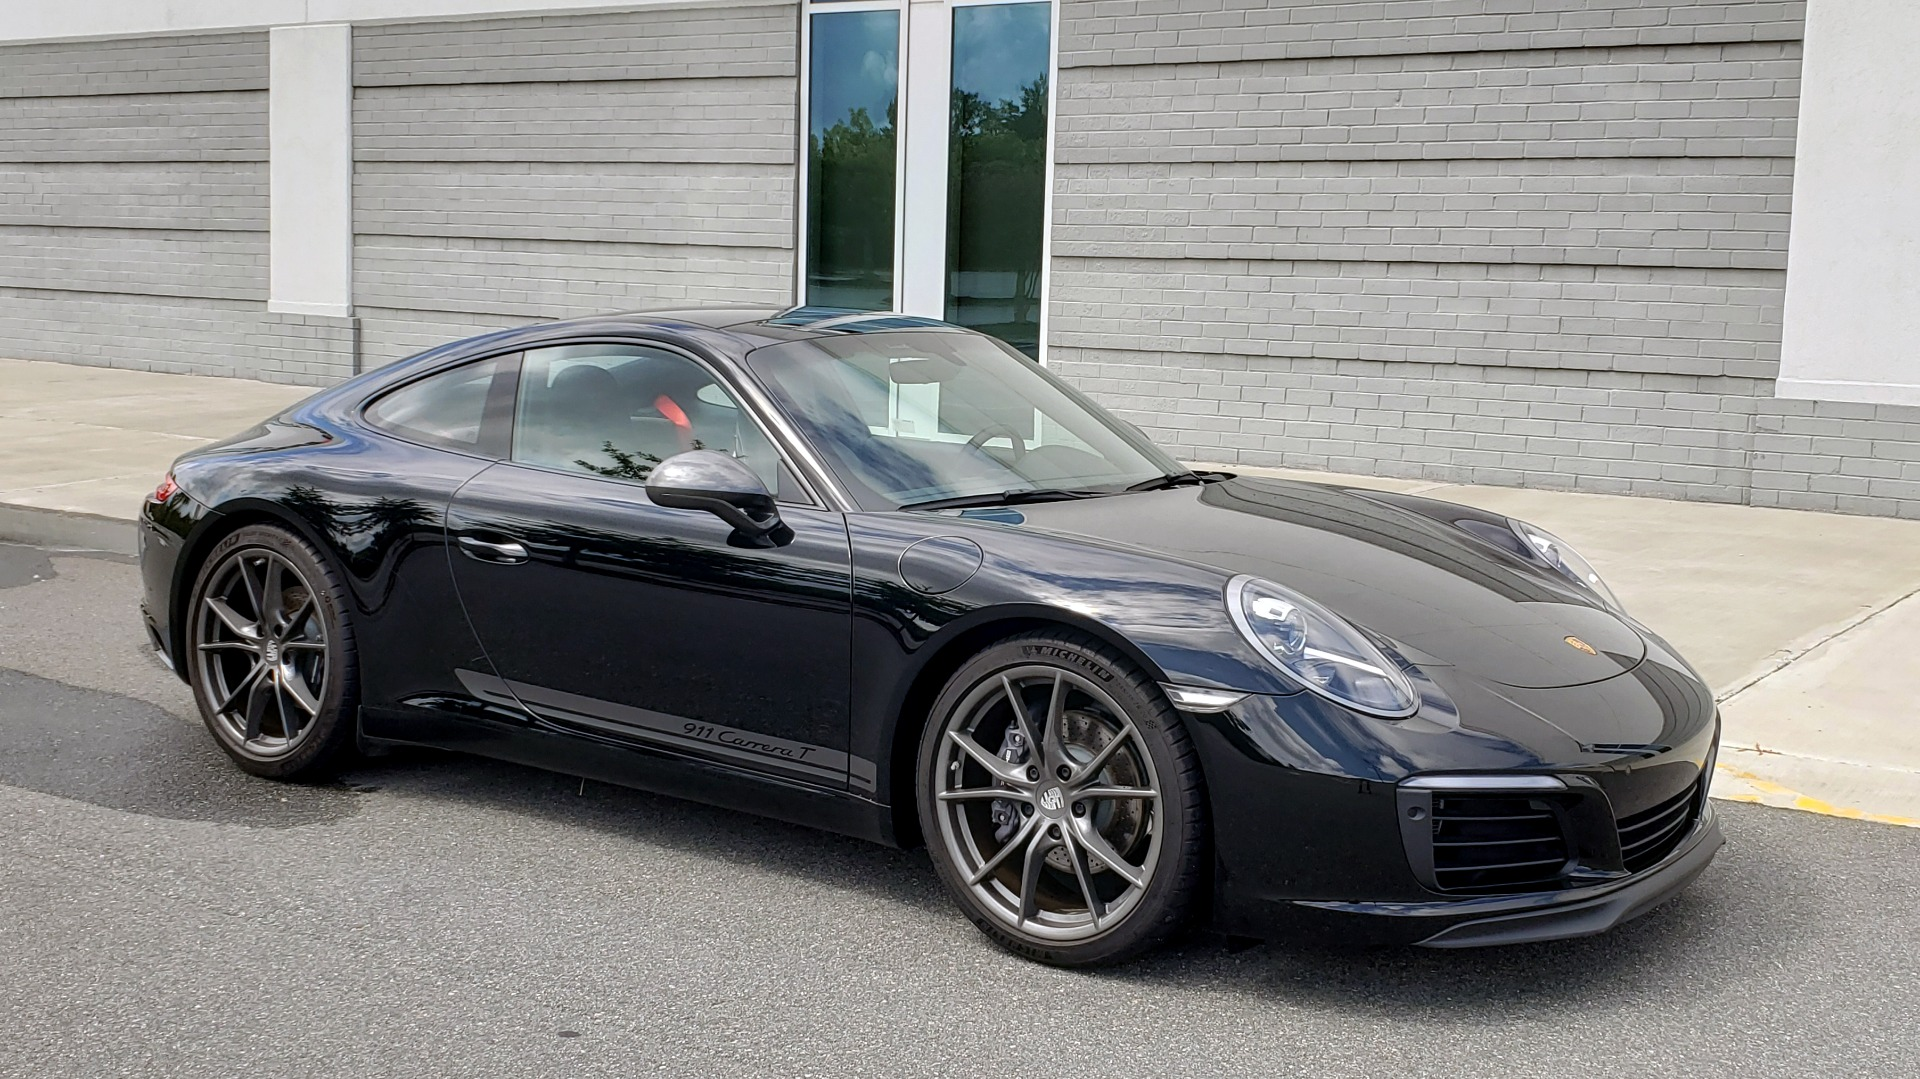 Used 2019 Porsche 911 CARRERA T / 3.0L H6 / MANUAL / PREMIUM / NAV / BOSE / SUNROOF / REARVIEW for sale $117,000 at Formula Imports in Charlotte NC 28227 8